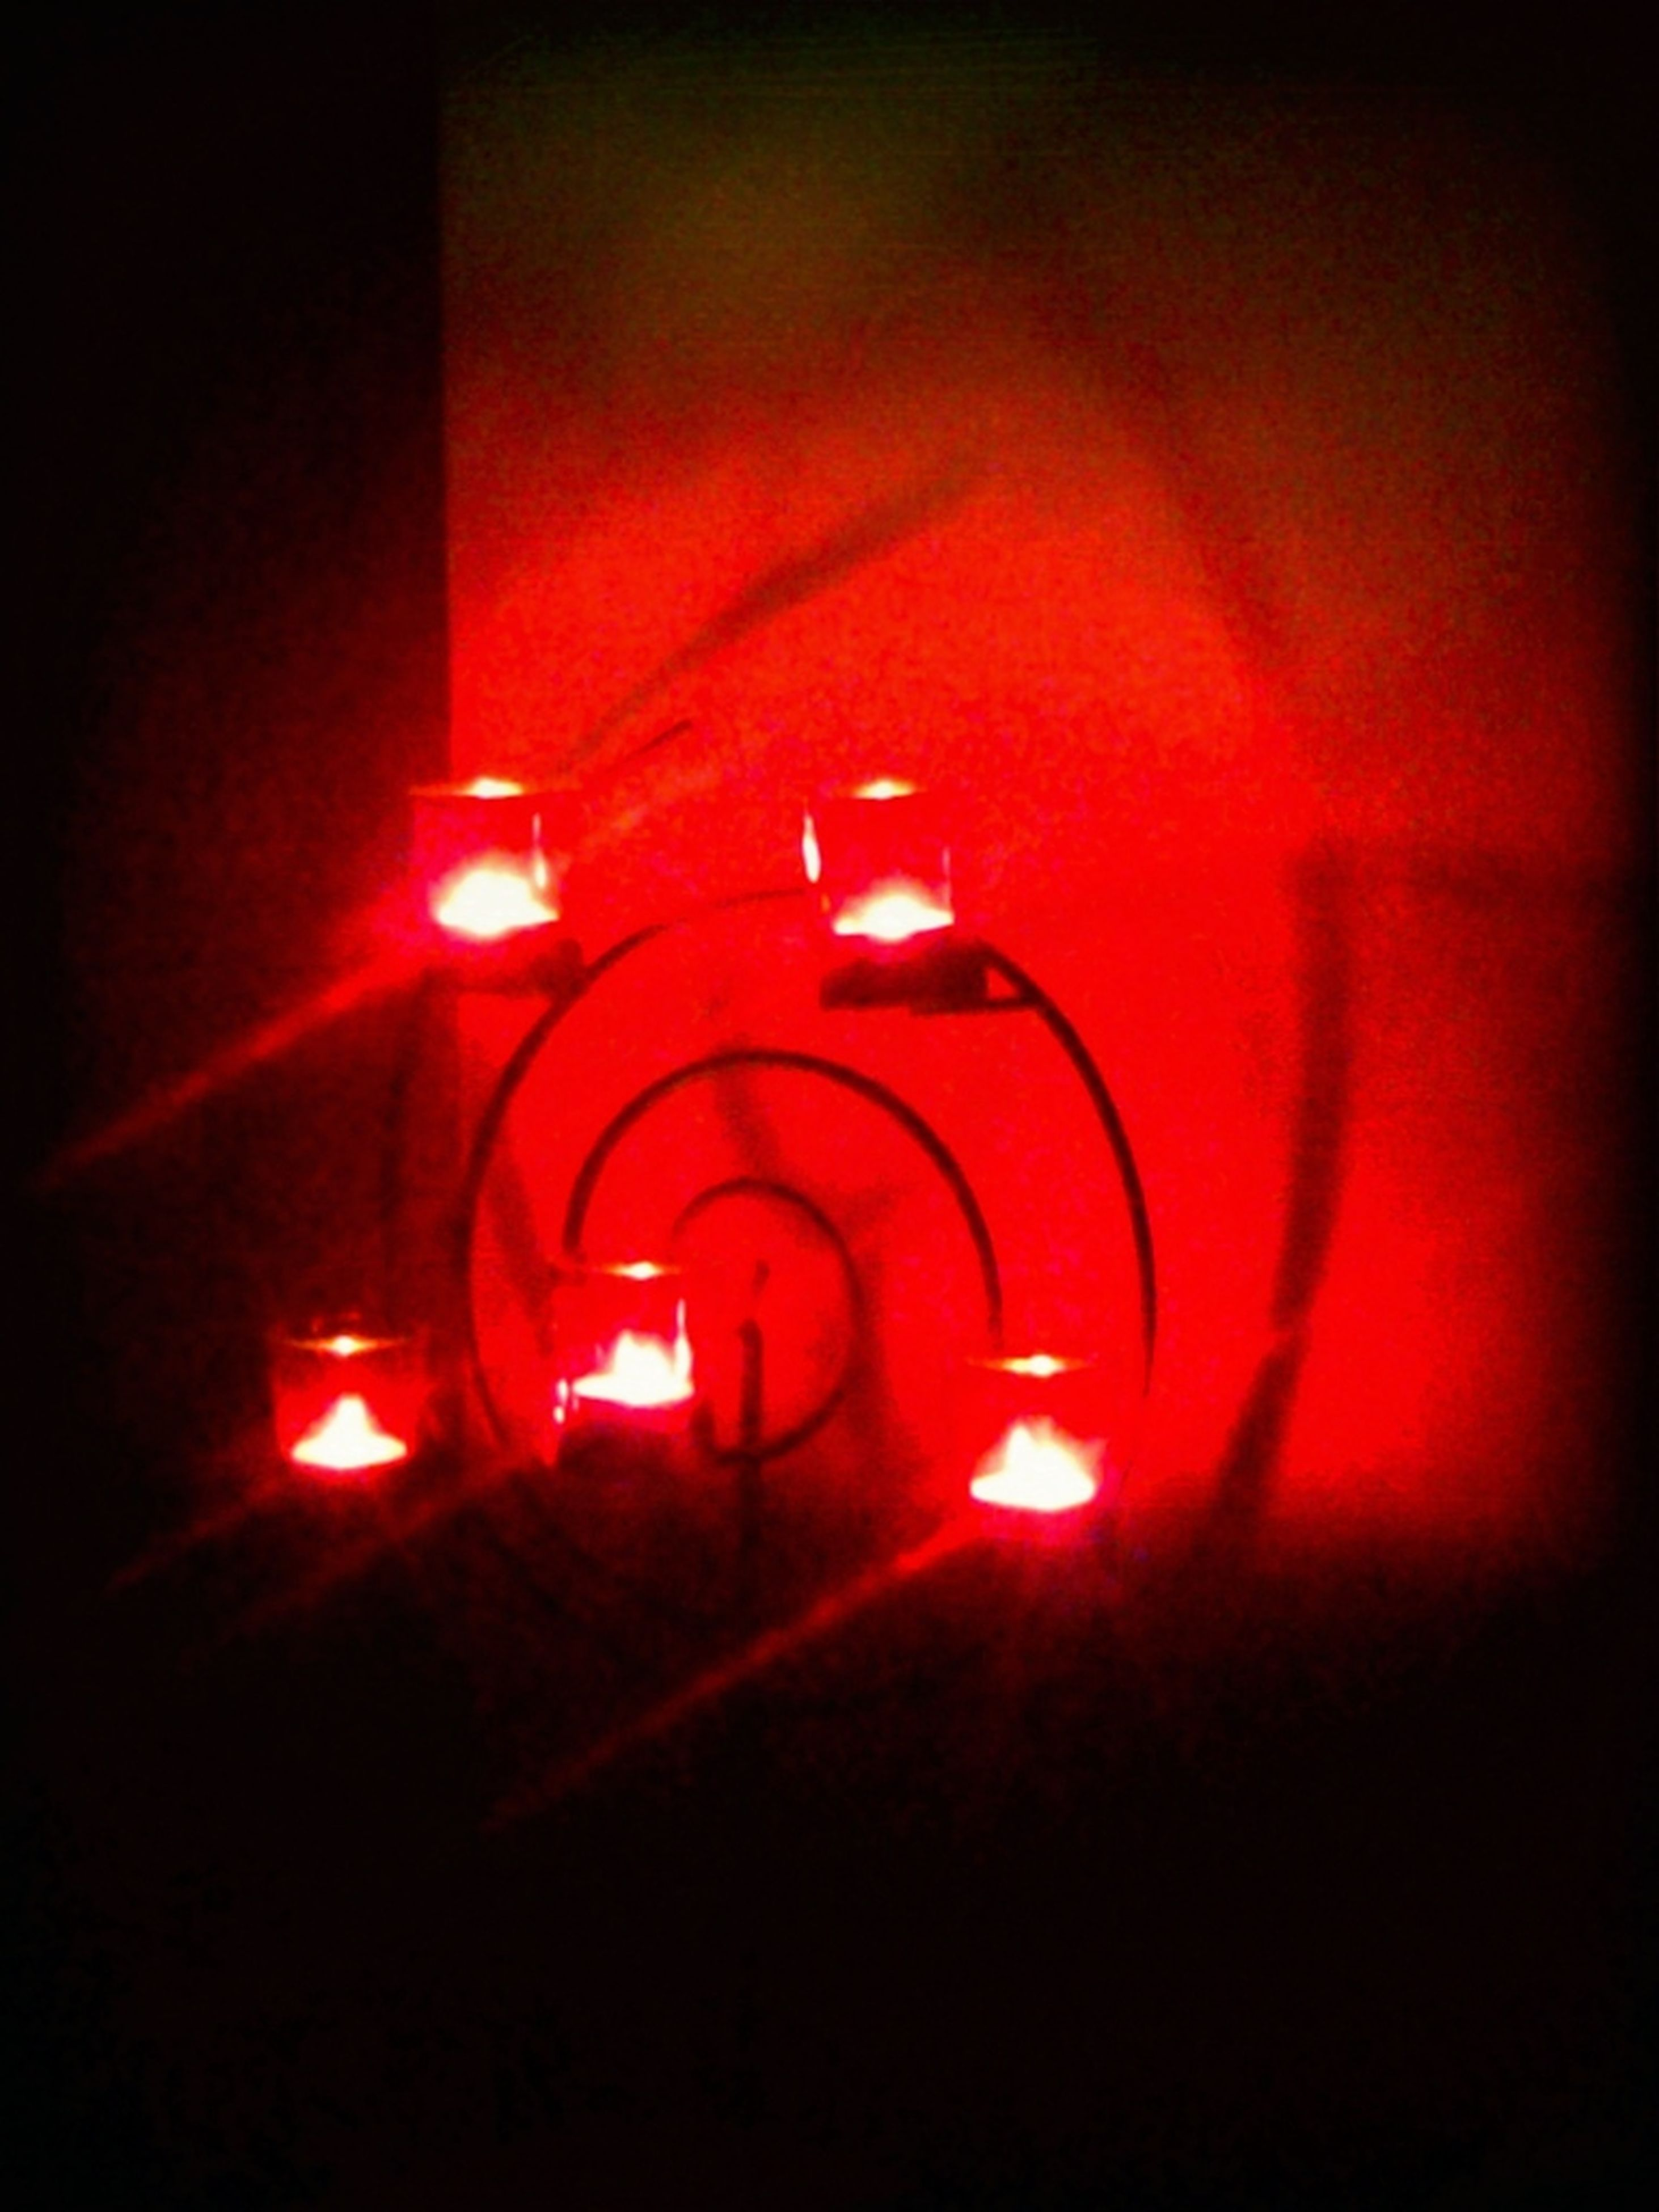 illuminated, indoors, lighting equipment, night, red, tunnel, light - natural phenomenon, glowing, electric light, the way forward, dark, lit, built structure, electricity, technology, architecture, light, transportation, no people, wall - building feature